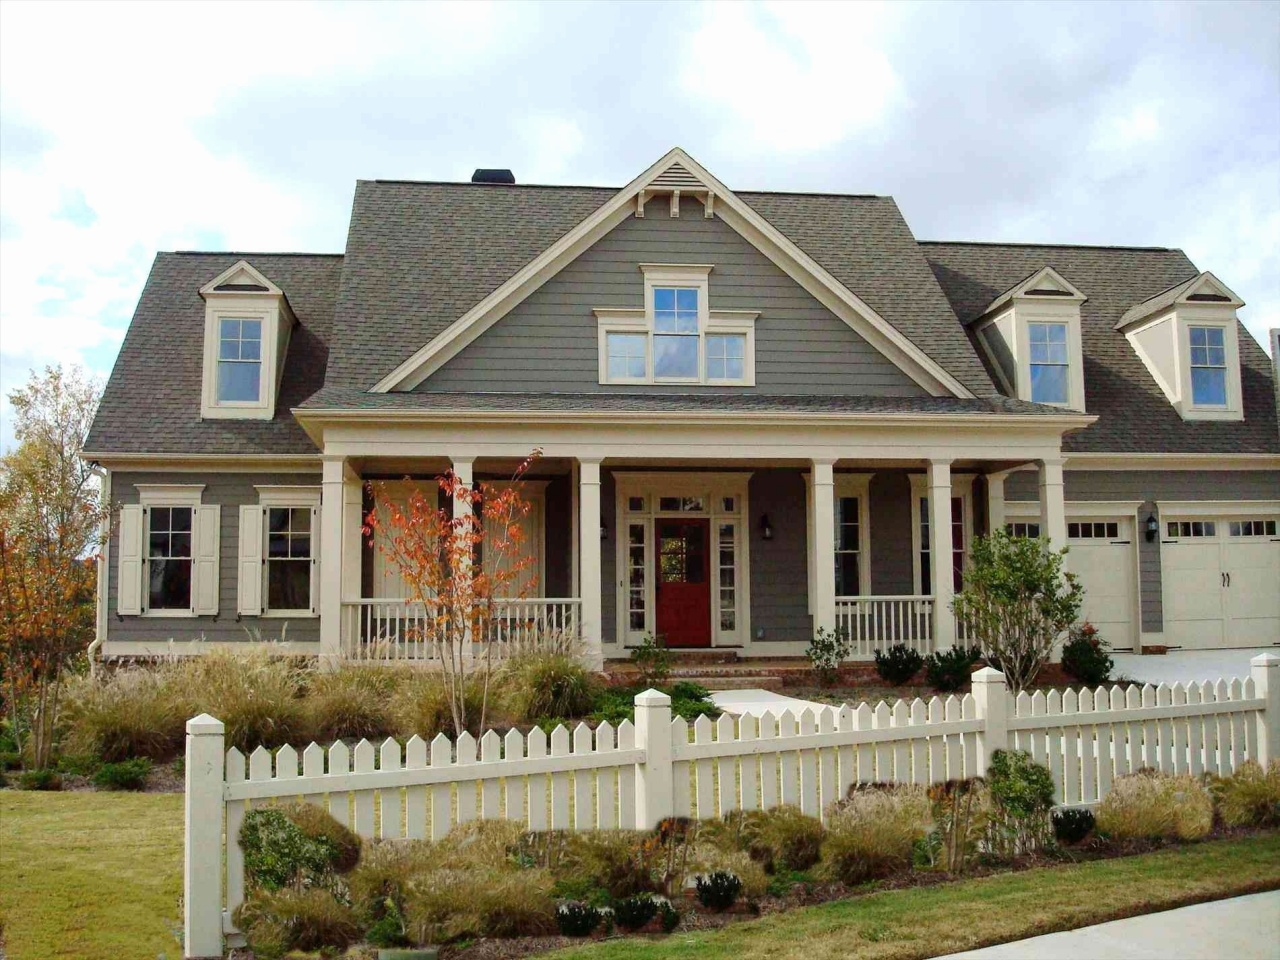 Sherwin Williams Vinyl Siding Paint 57 New Exterior House Paint Colors Gallery Equalmarriagefl Vinyl From Sherwin Williams Vinyl Siding Paint Pictures